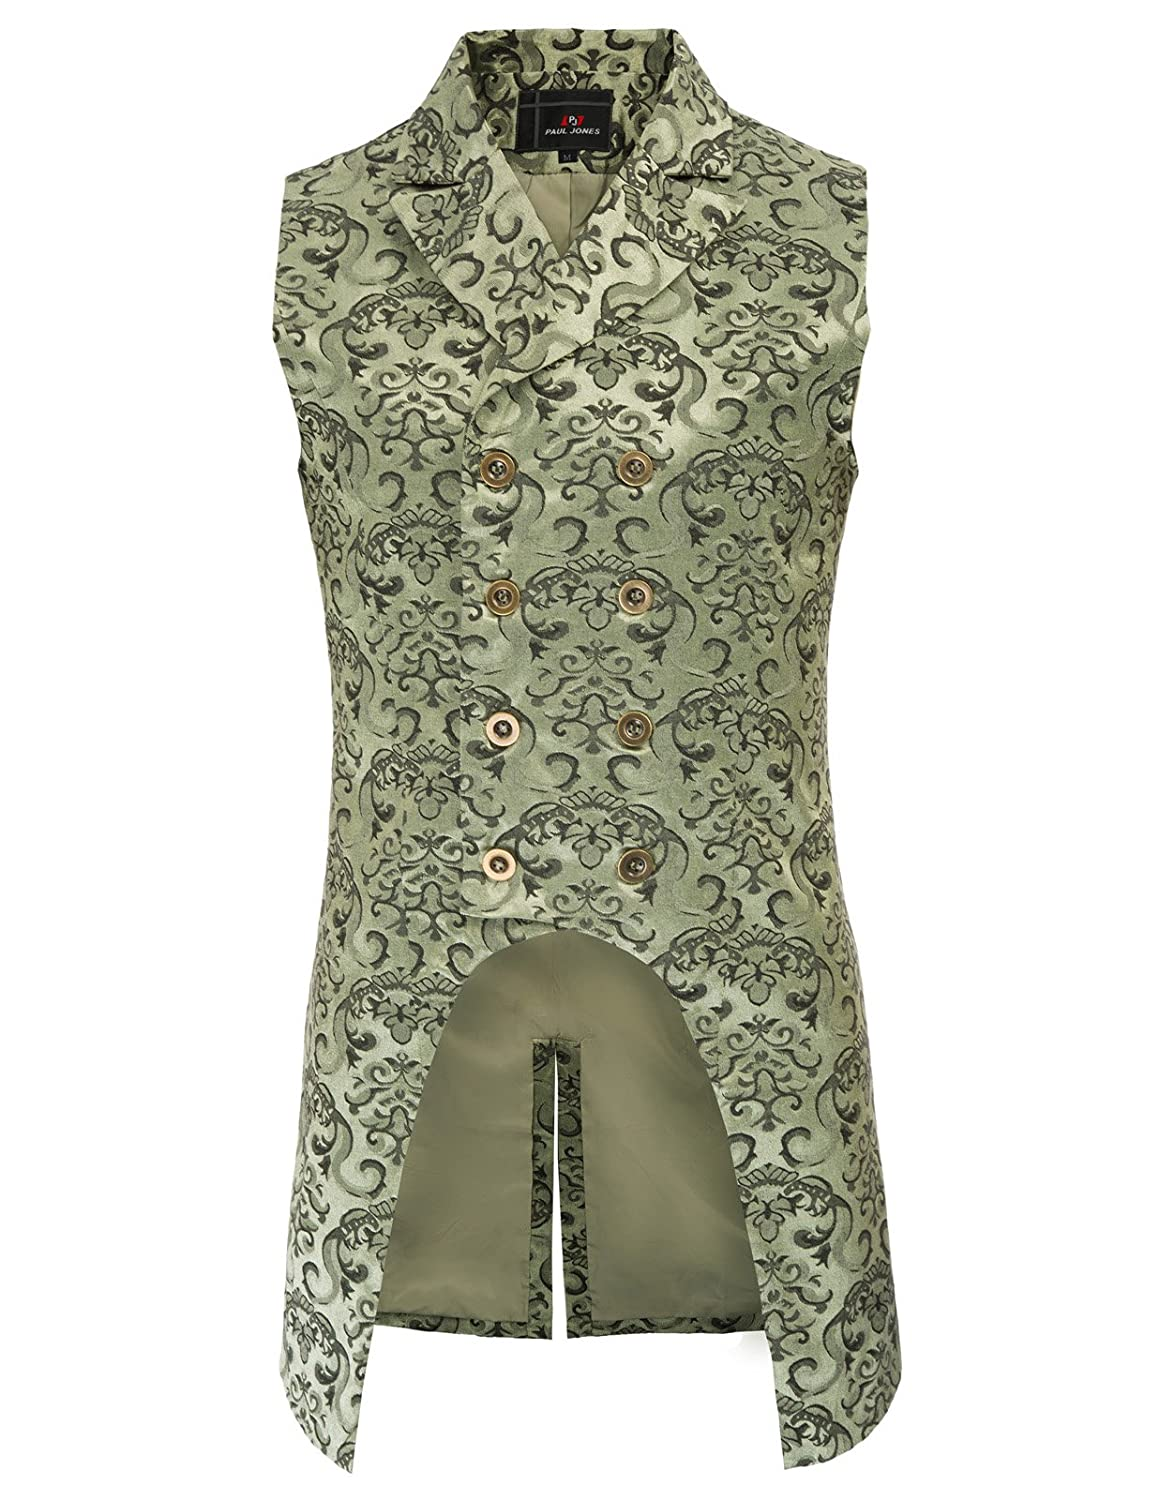 Mens Steampunk Gothic Vest Waistcoat Double-Breasted Jacquard Coat Green M